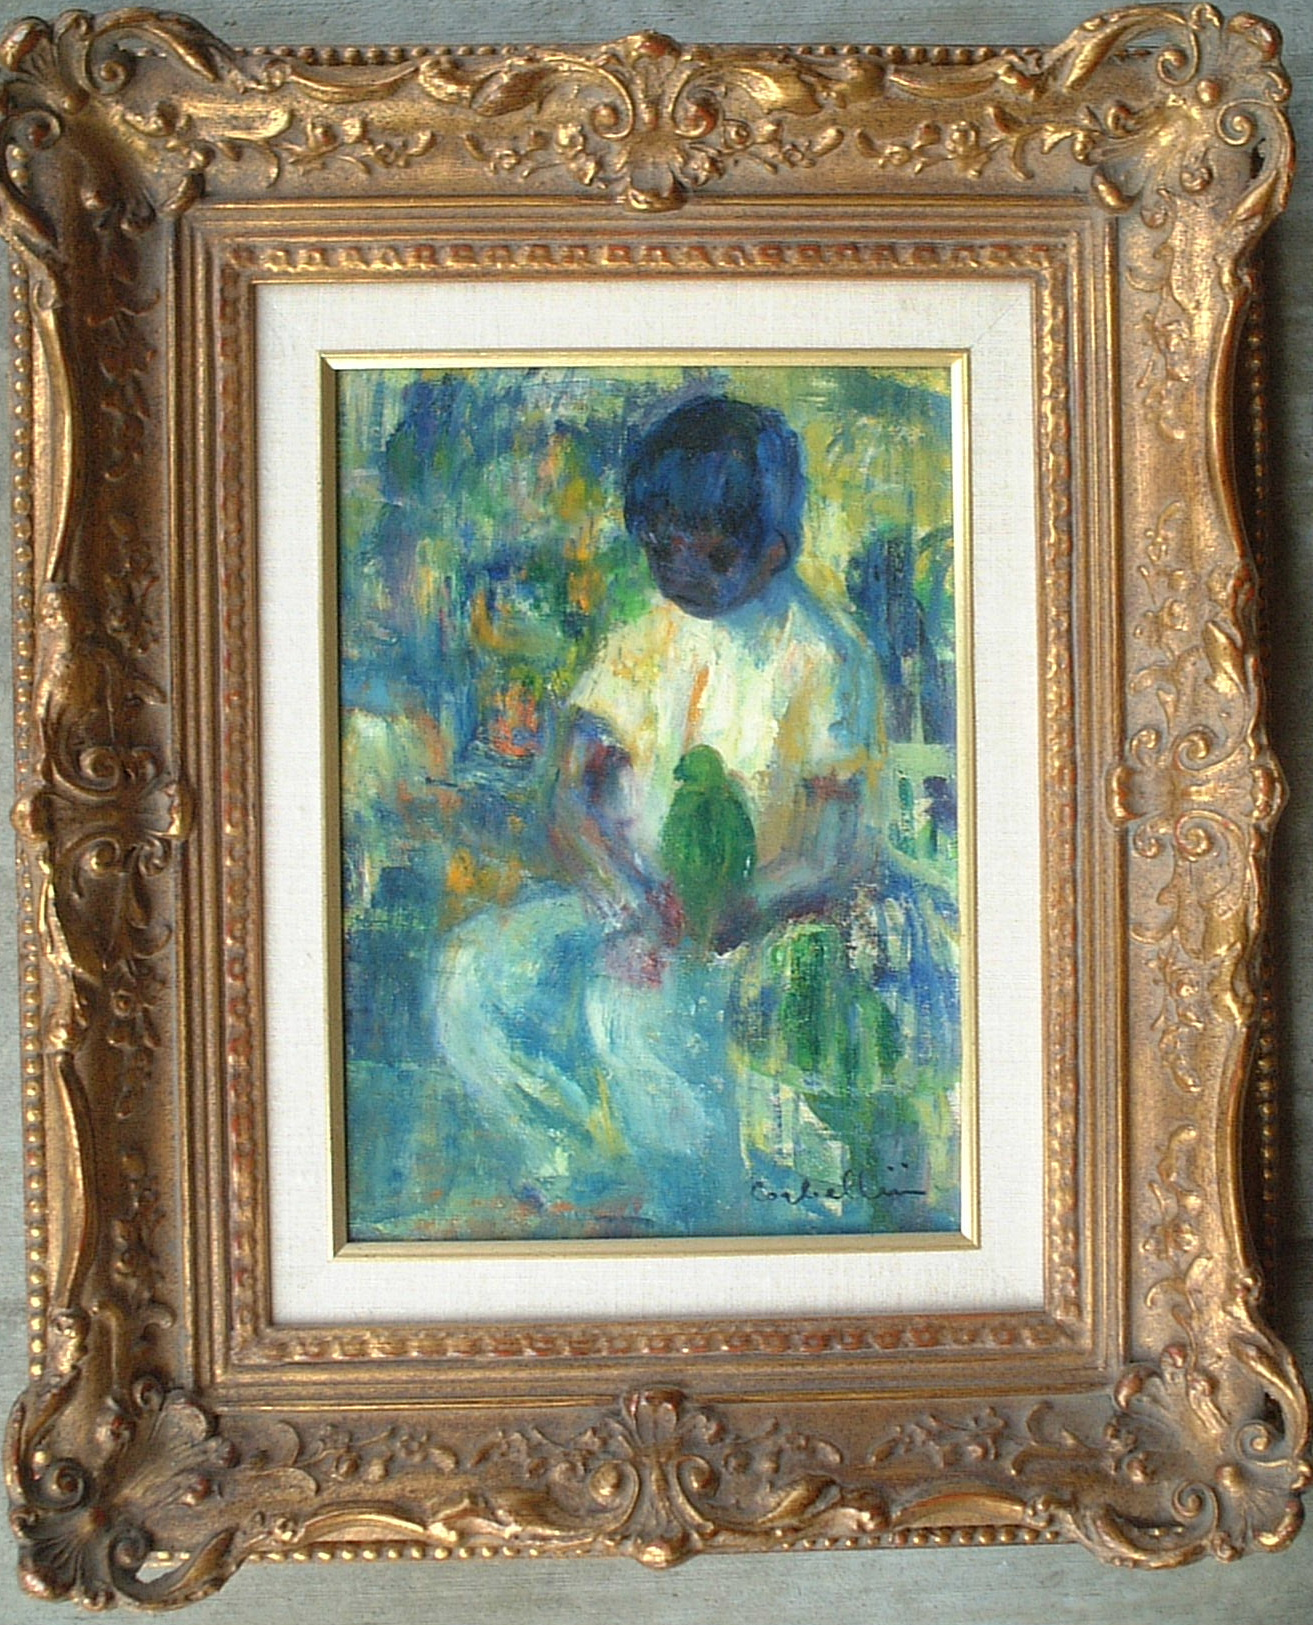 Artist: Luigi Corbellini Title: Boy and Bird Size: 10.5in x 7.5in Framed: Yes